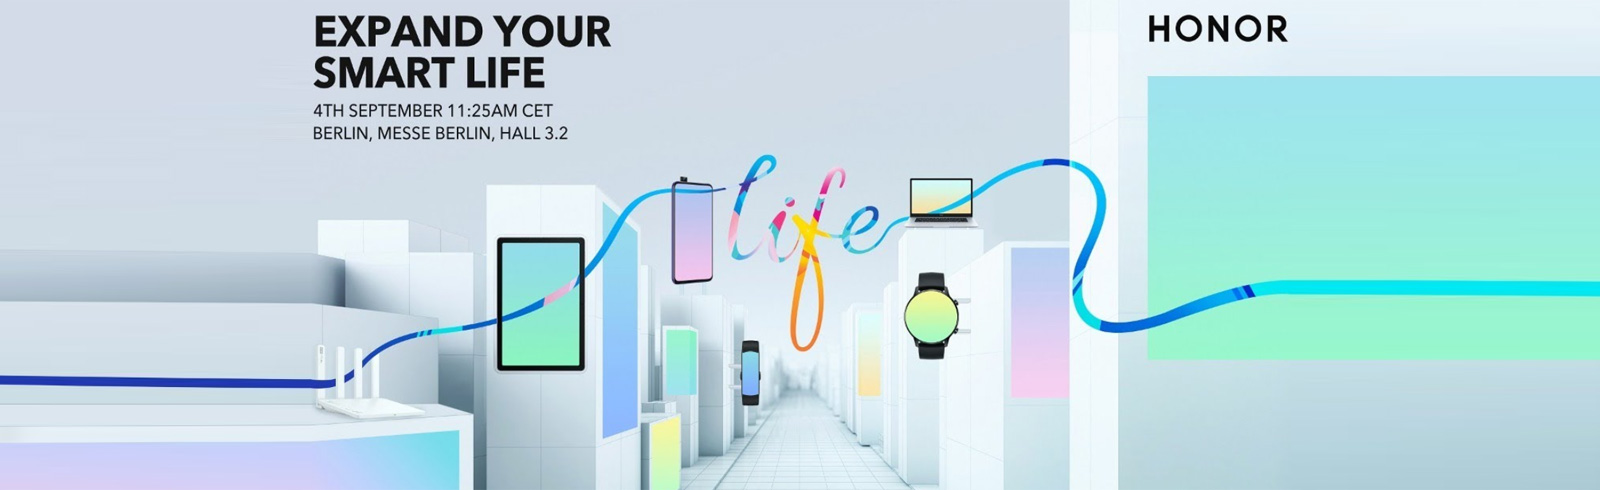 The Honor IFA 2020 launch event will be held on September 4th, you can watch it here